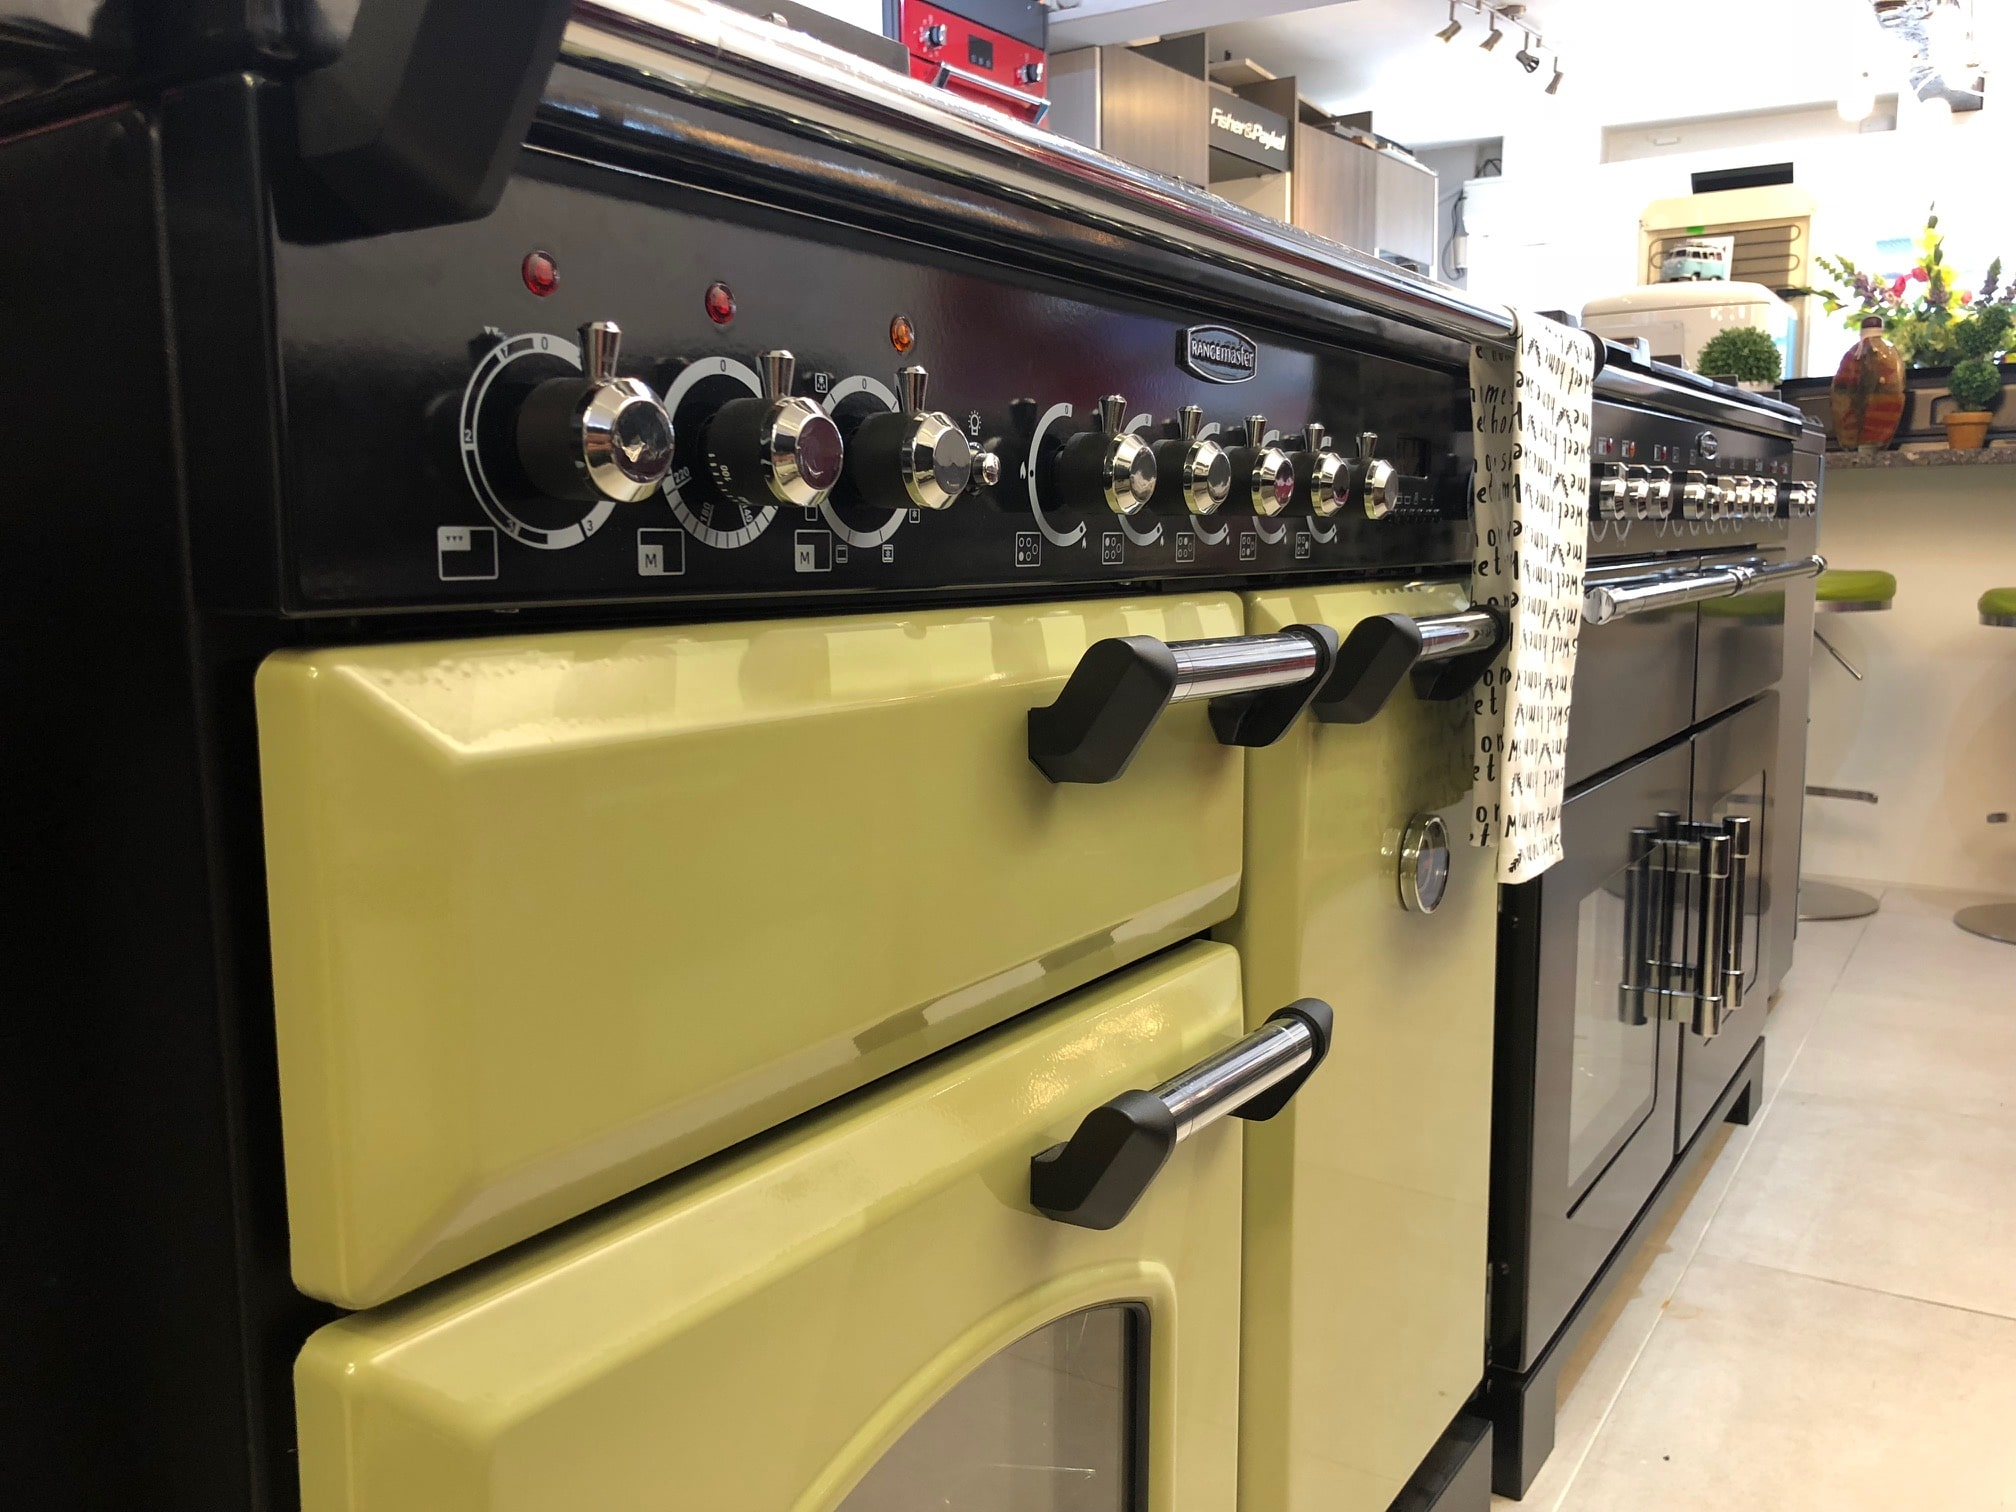 Get hands on with the cookers